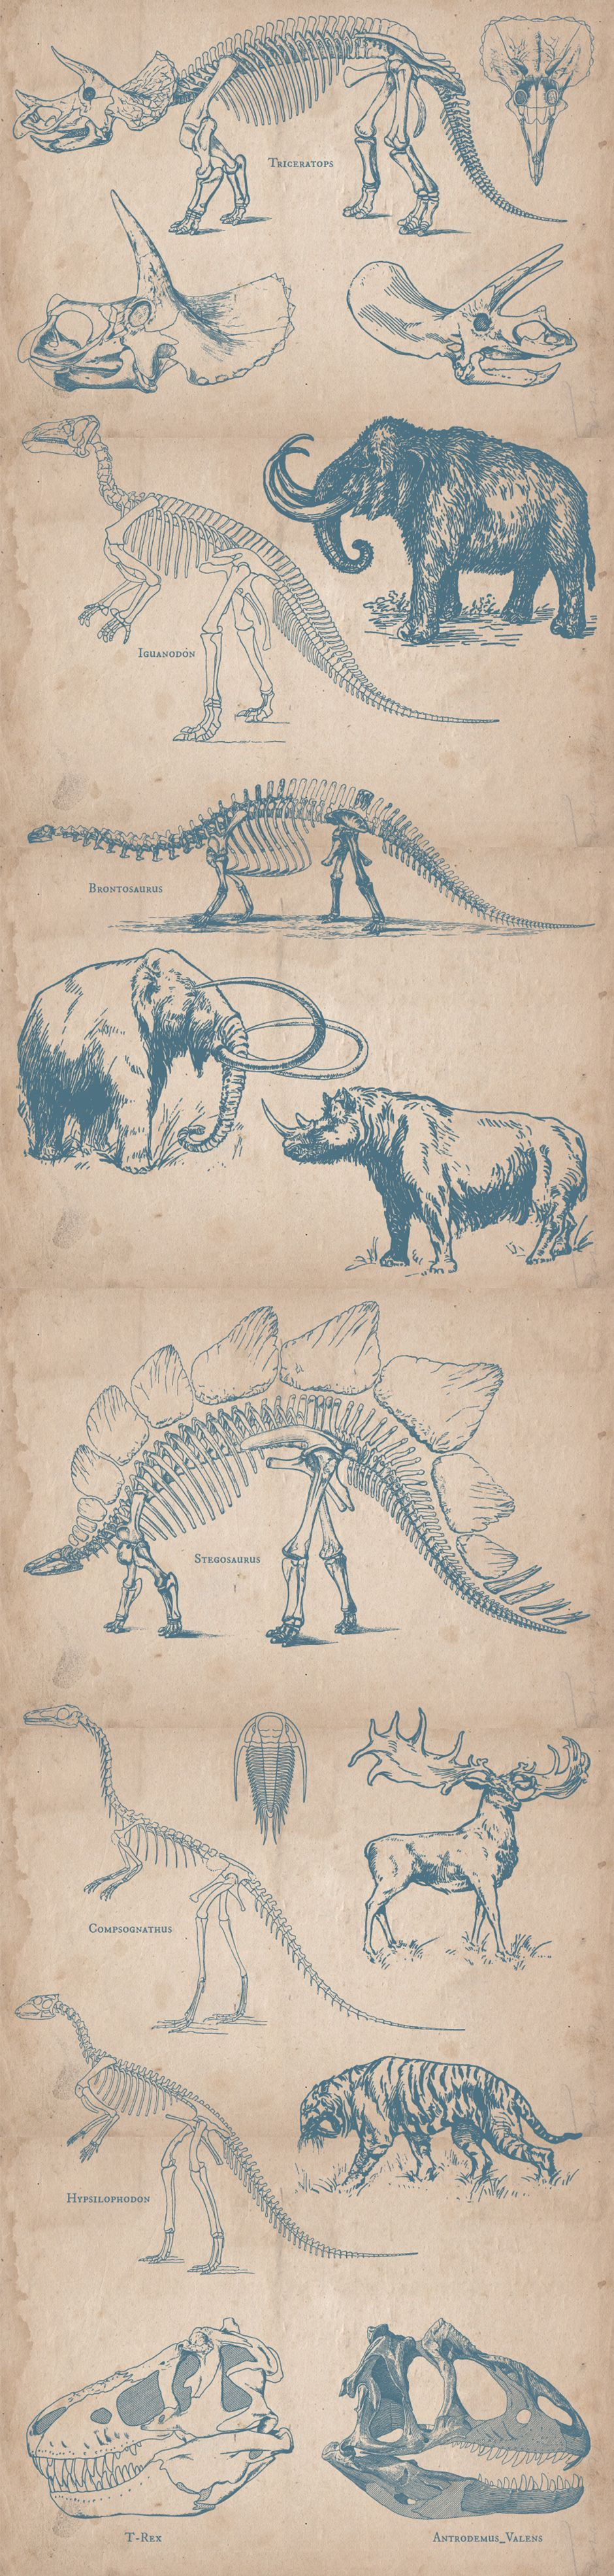 Prehistoric Animals #prehistoricanimals Carefully restored illustrations - Most of the sold vintage vector illustrations look just like the source materials – nicely weathered. But sometimes th #prehistoricanimals